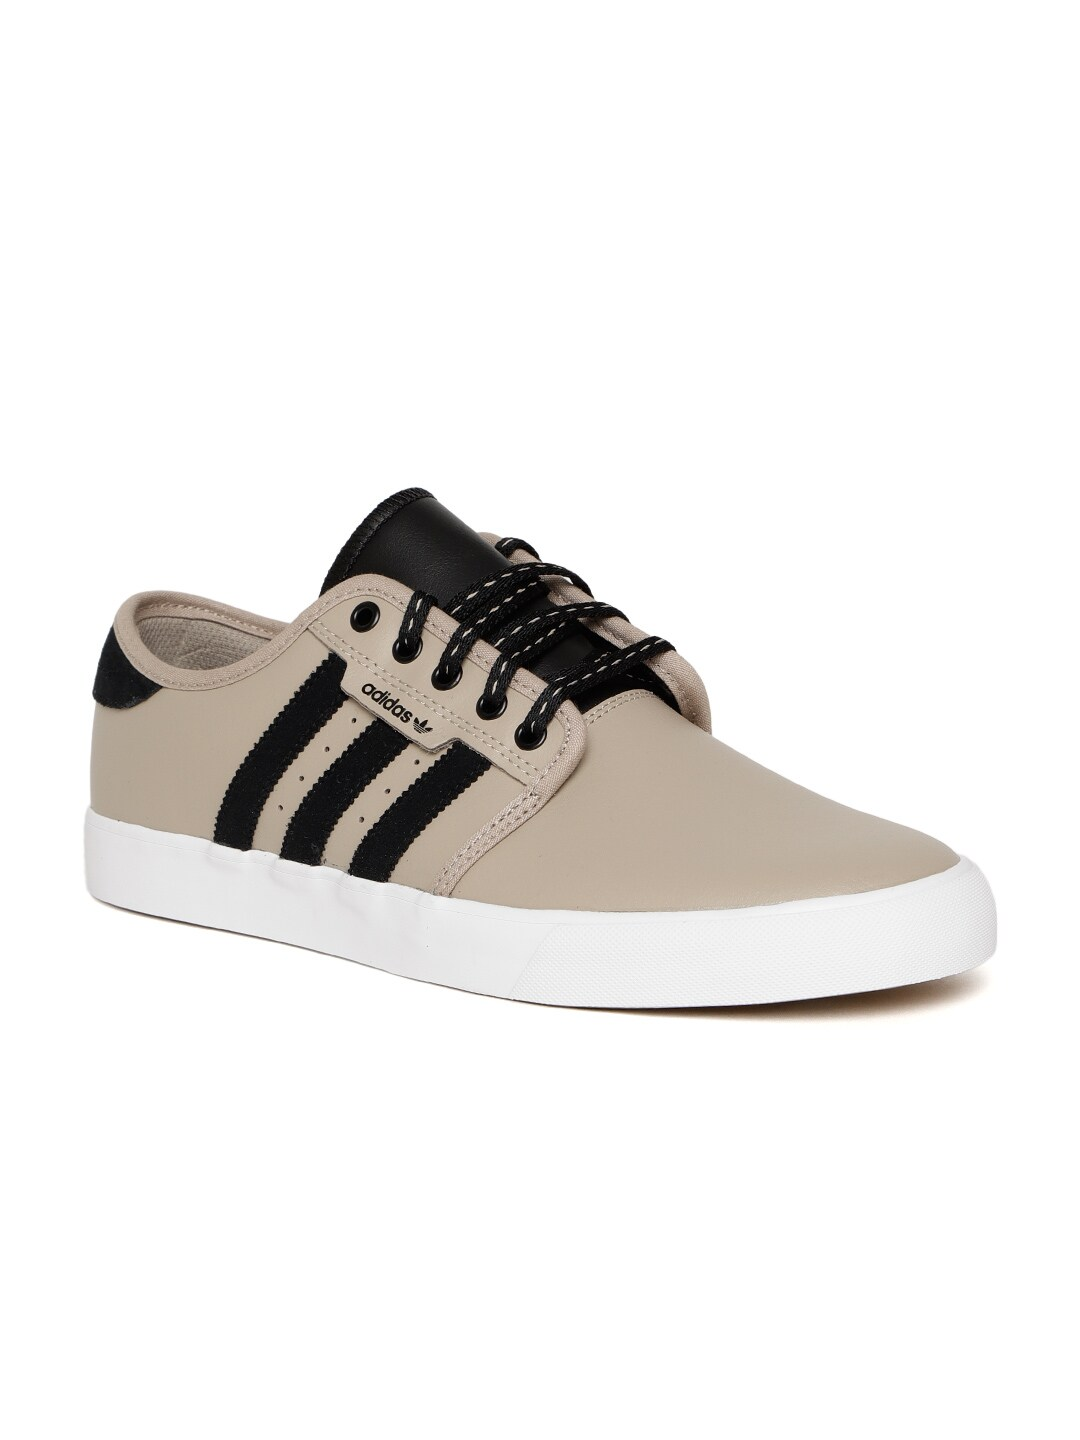 watch d49af 9d49b Adidas Casual Shoes  Buy Adidas Casual Shoes Online in India at Best Price